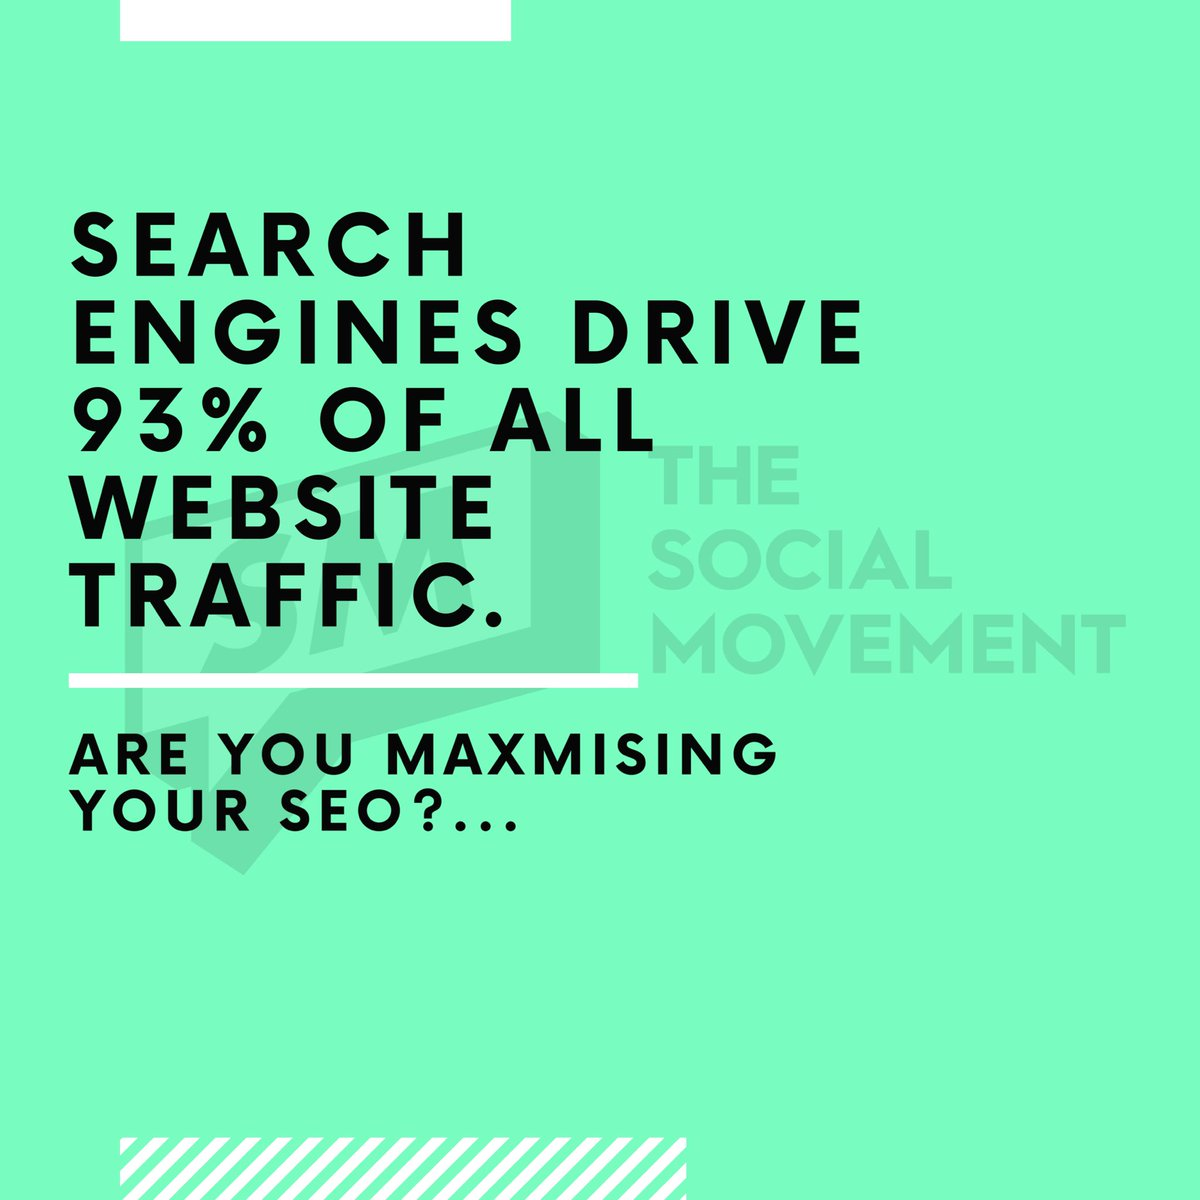 82% of organisations say SEO is the most effective way of marketing...  #digitalmarketing #marketing #socialmediamarketing #socialmedia #seo #business #onlinemarketing #contentmarketing #entrepreneur #marketingtips<br>http://pic.twitter.com/Tj7fG6r3rA